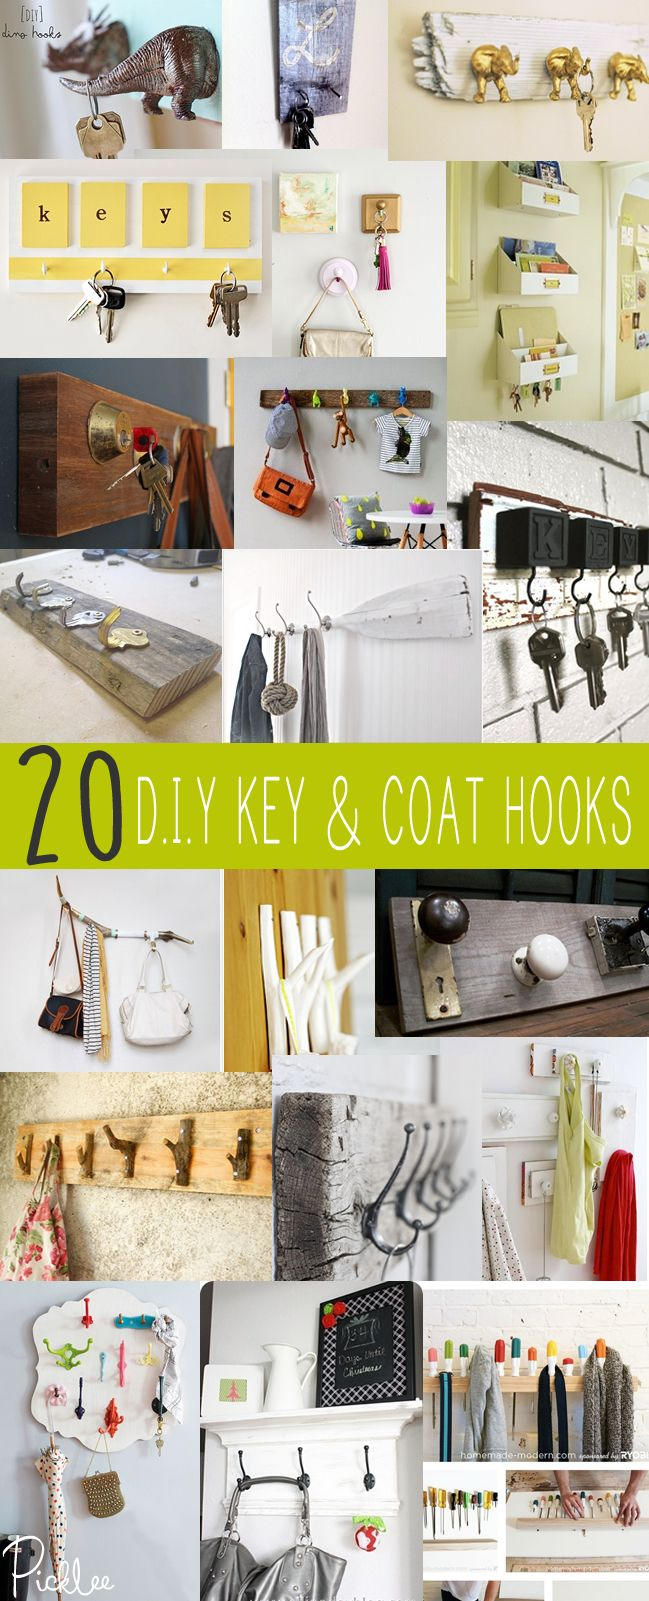 522 best Hook board ideas images on Pinterest | Home ideas, Clothes ...